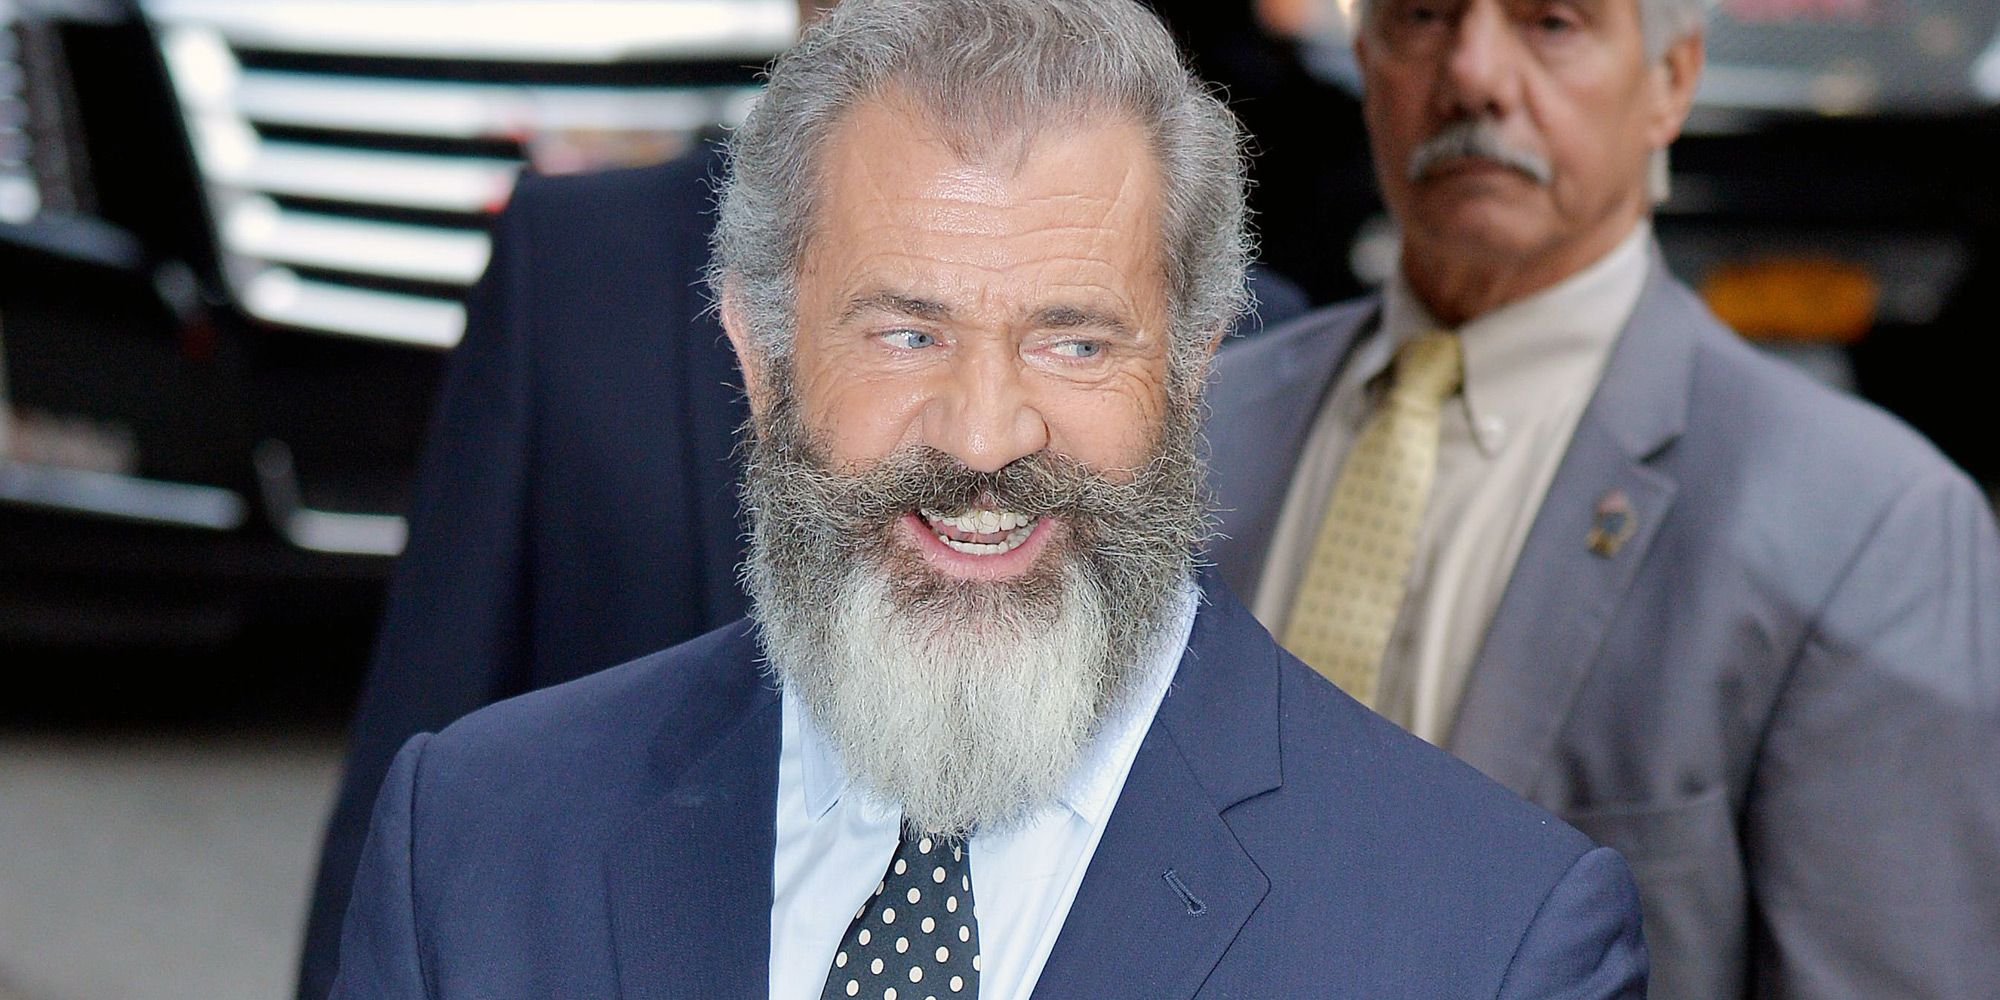 What the Hell is Going on With Mel Gibson's Beard?